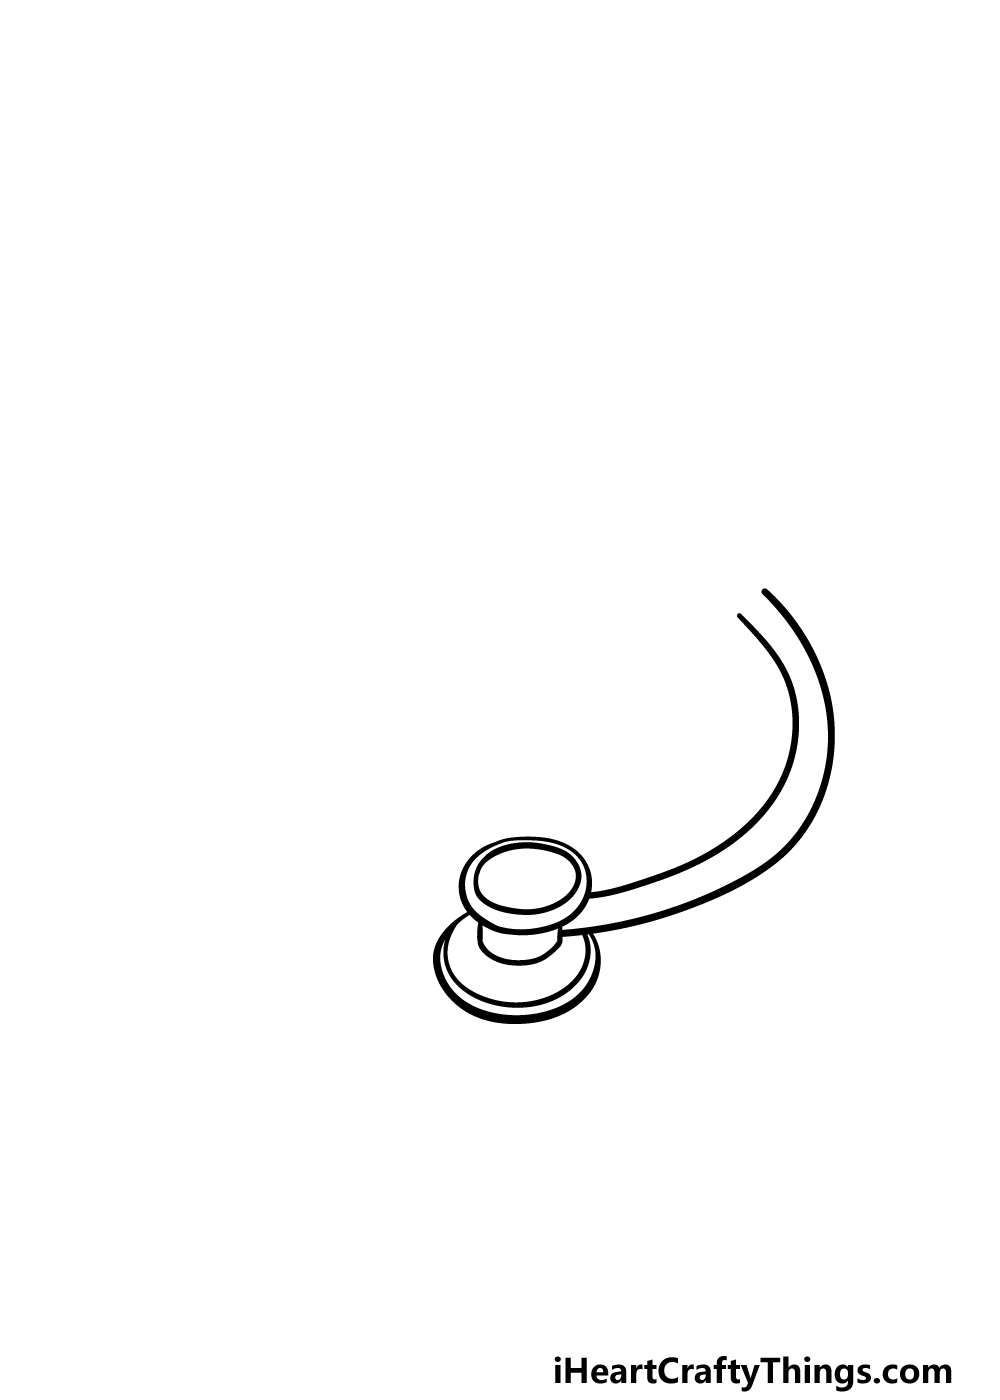 drawing stethoscope step 1